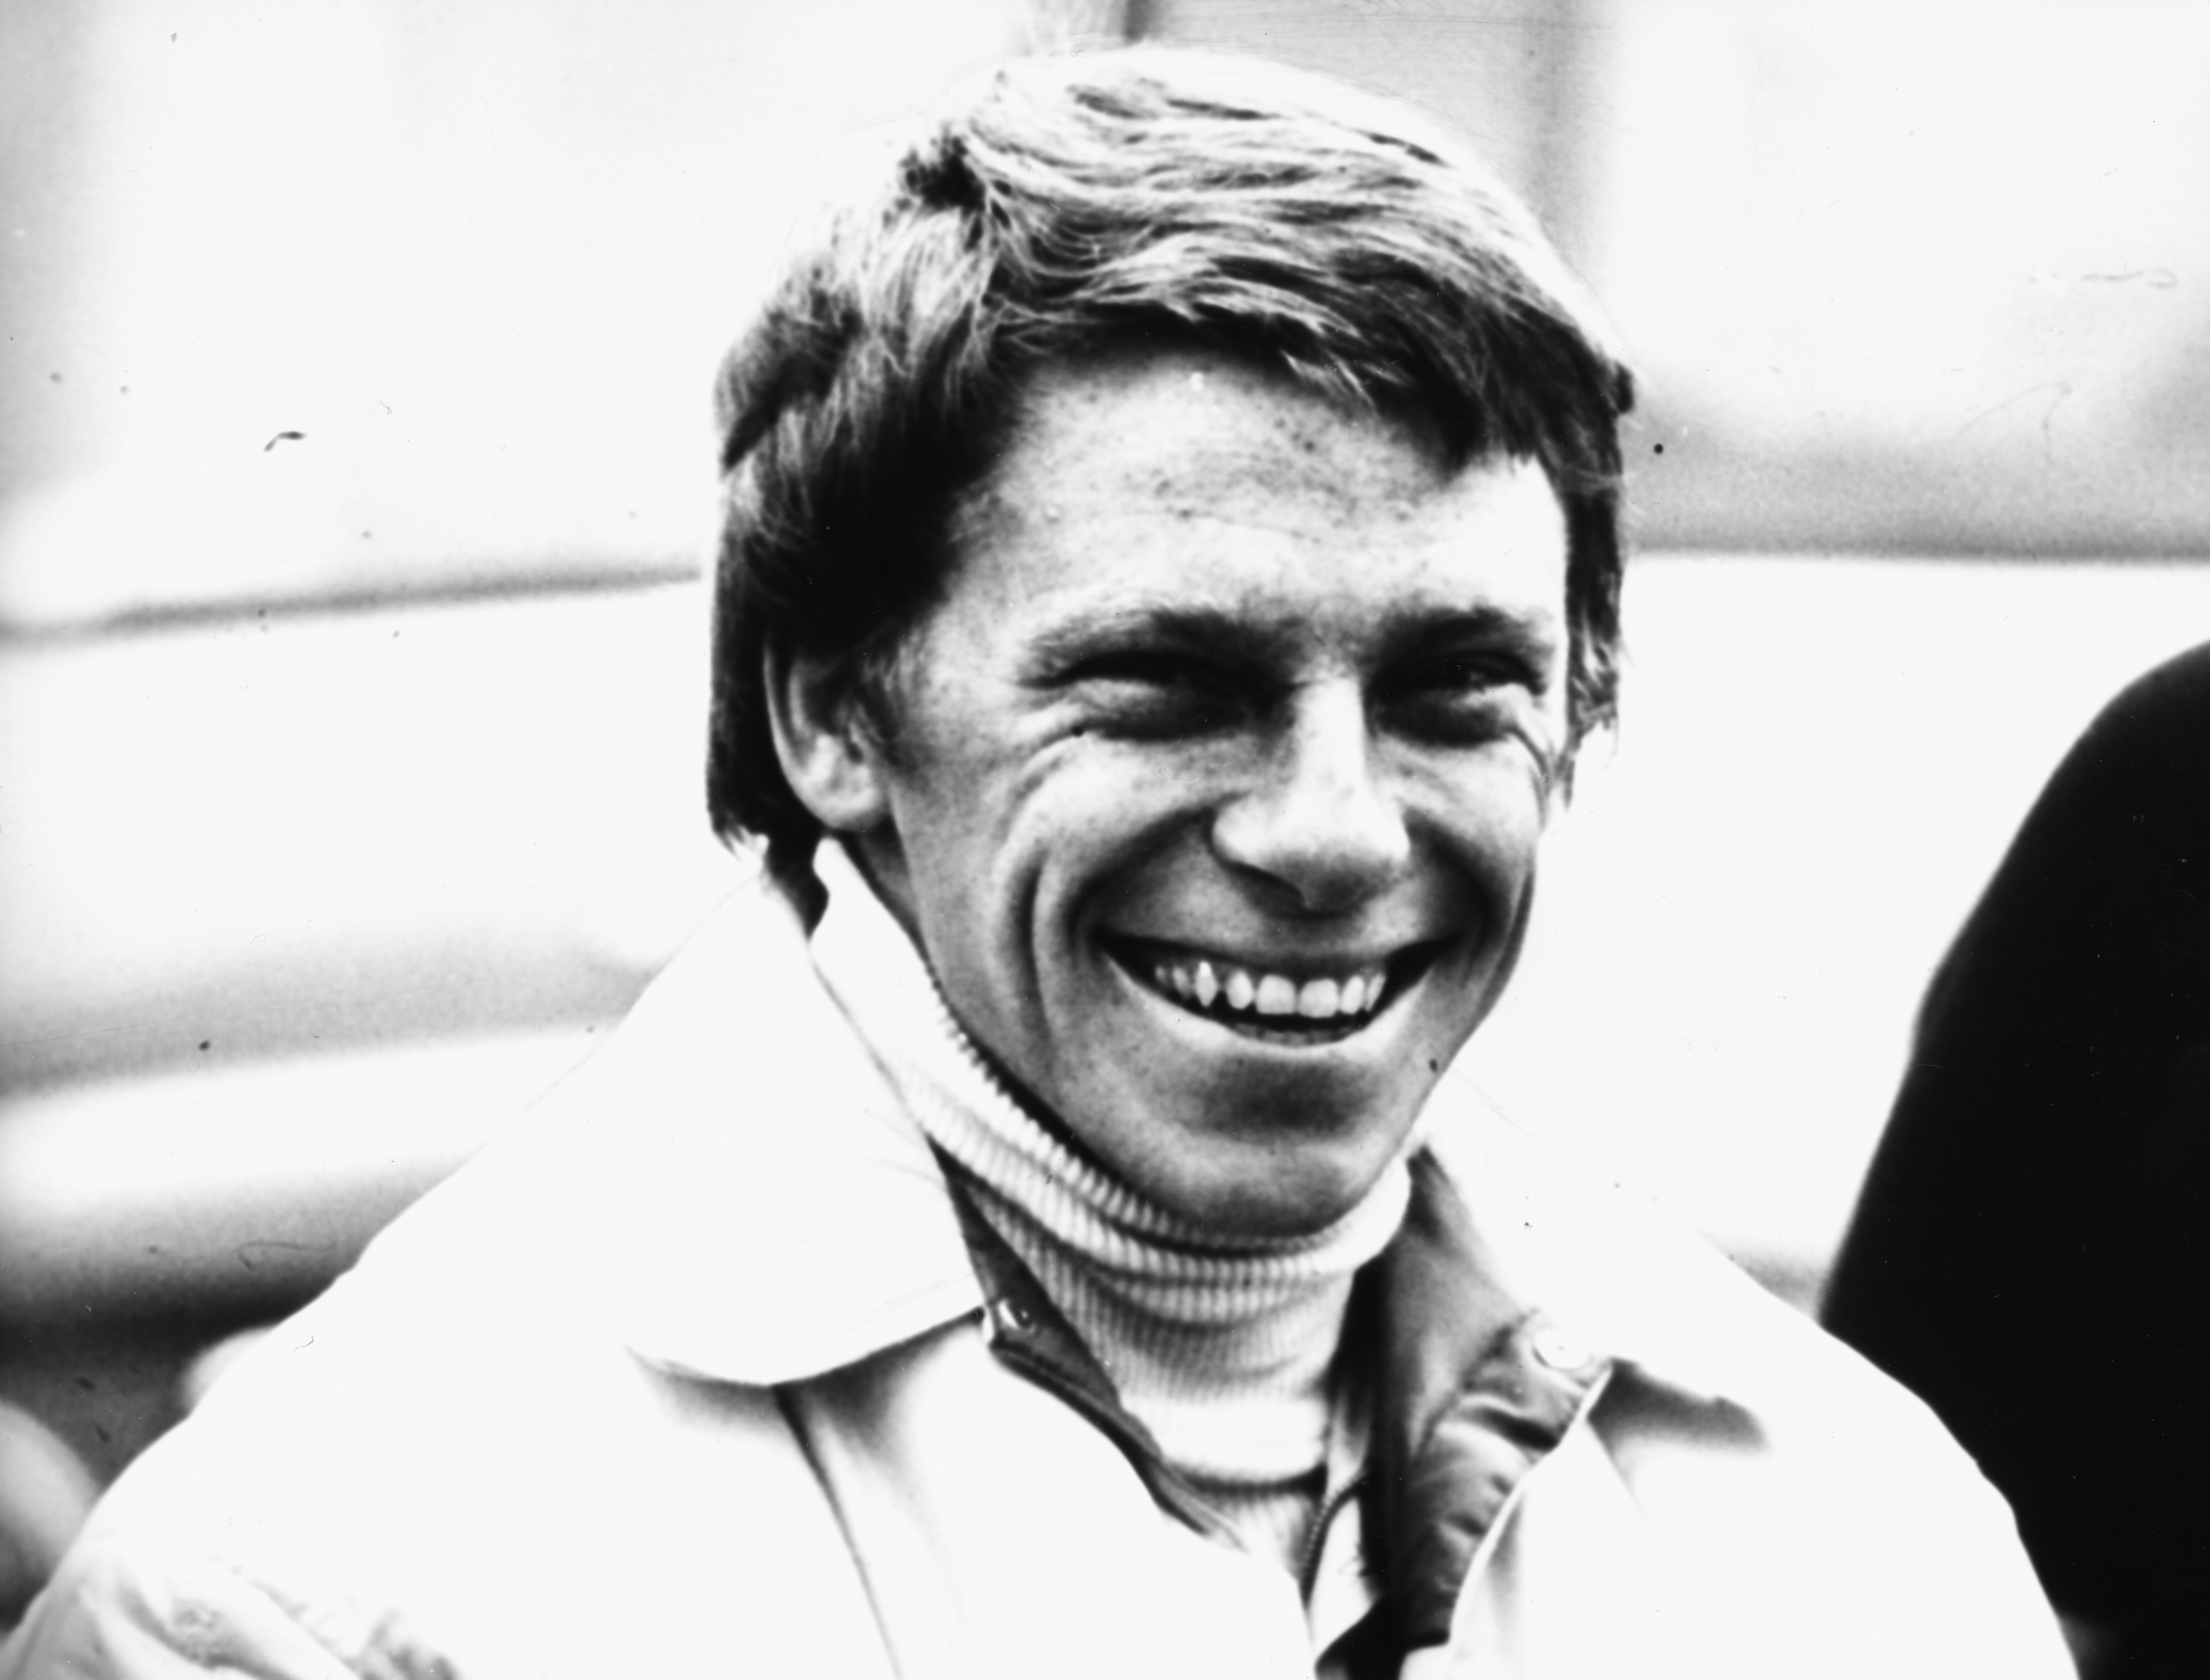 Driver Roger Williamson laughing, prior to his death at 25 years old